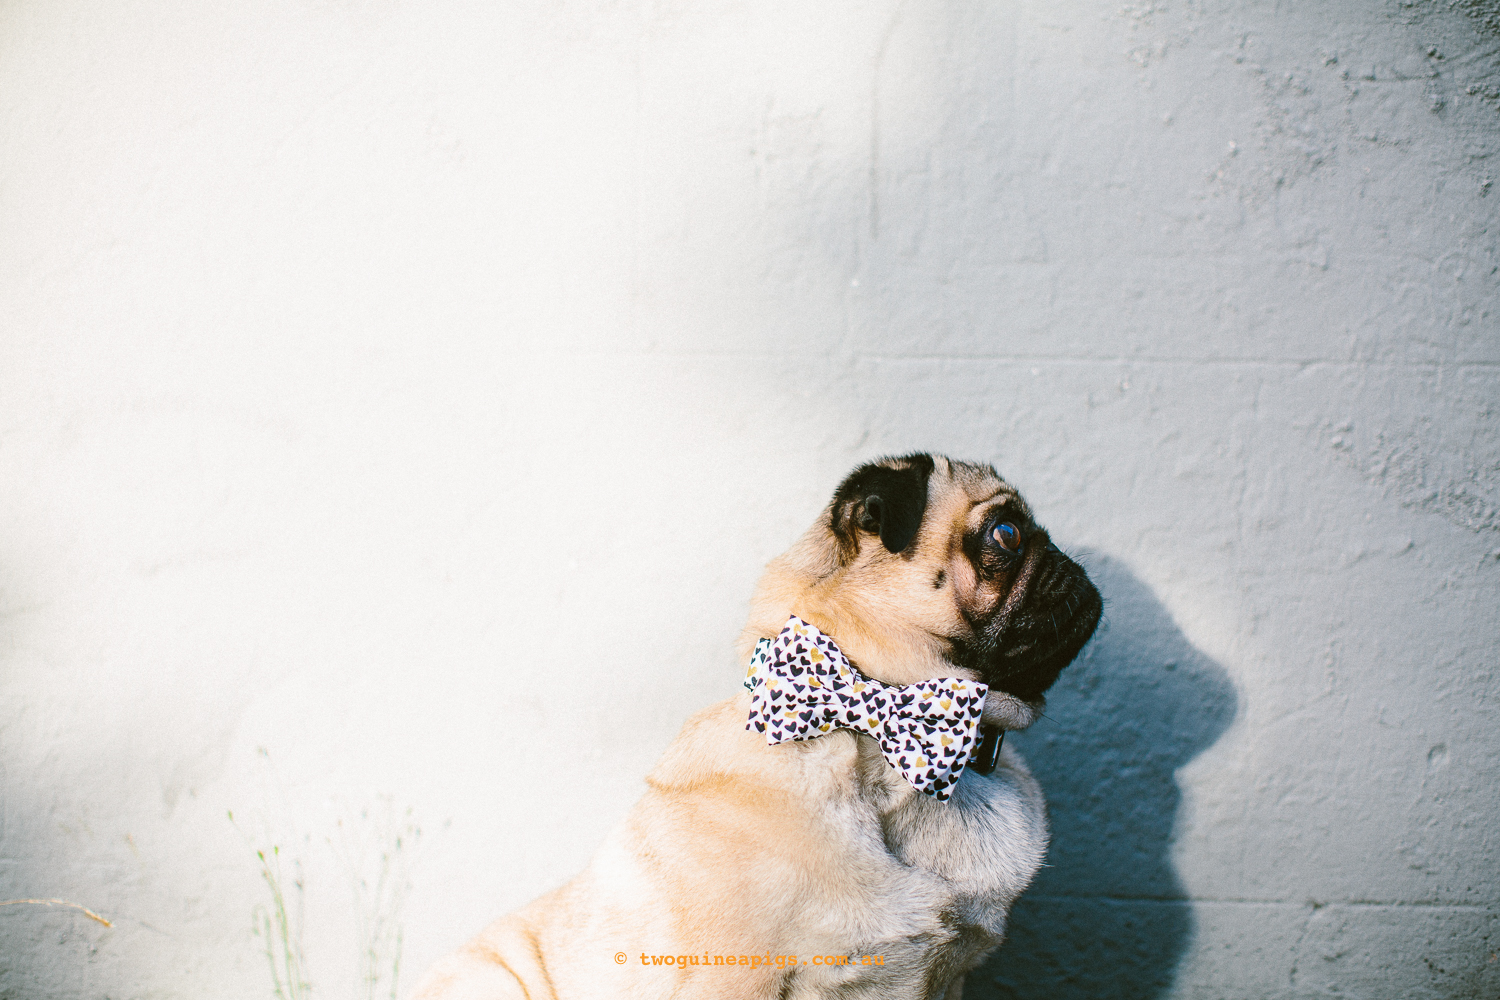 twoguineapigs_pet_photography_ohjaffa_bowtie_pug_valentines_day_design_heart_to_heart